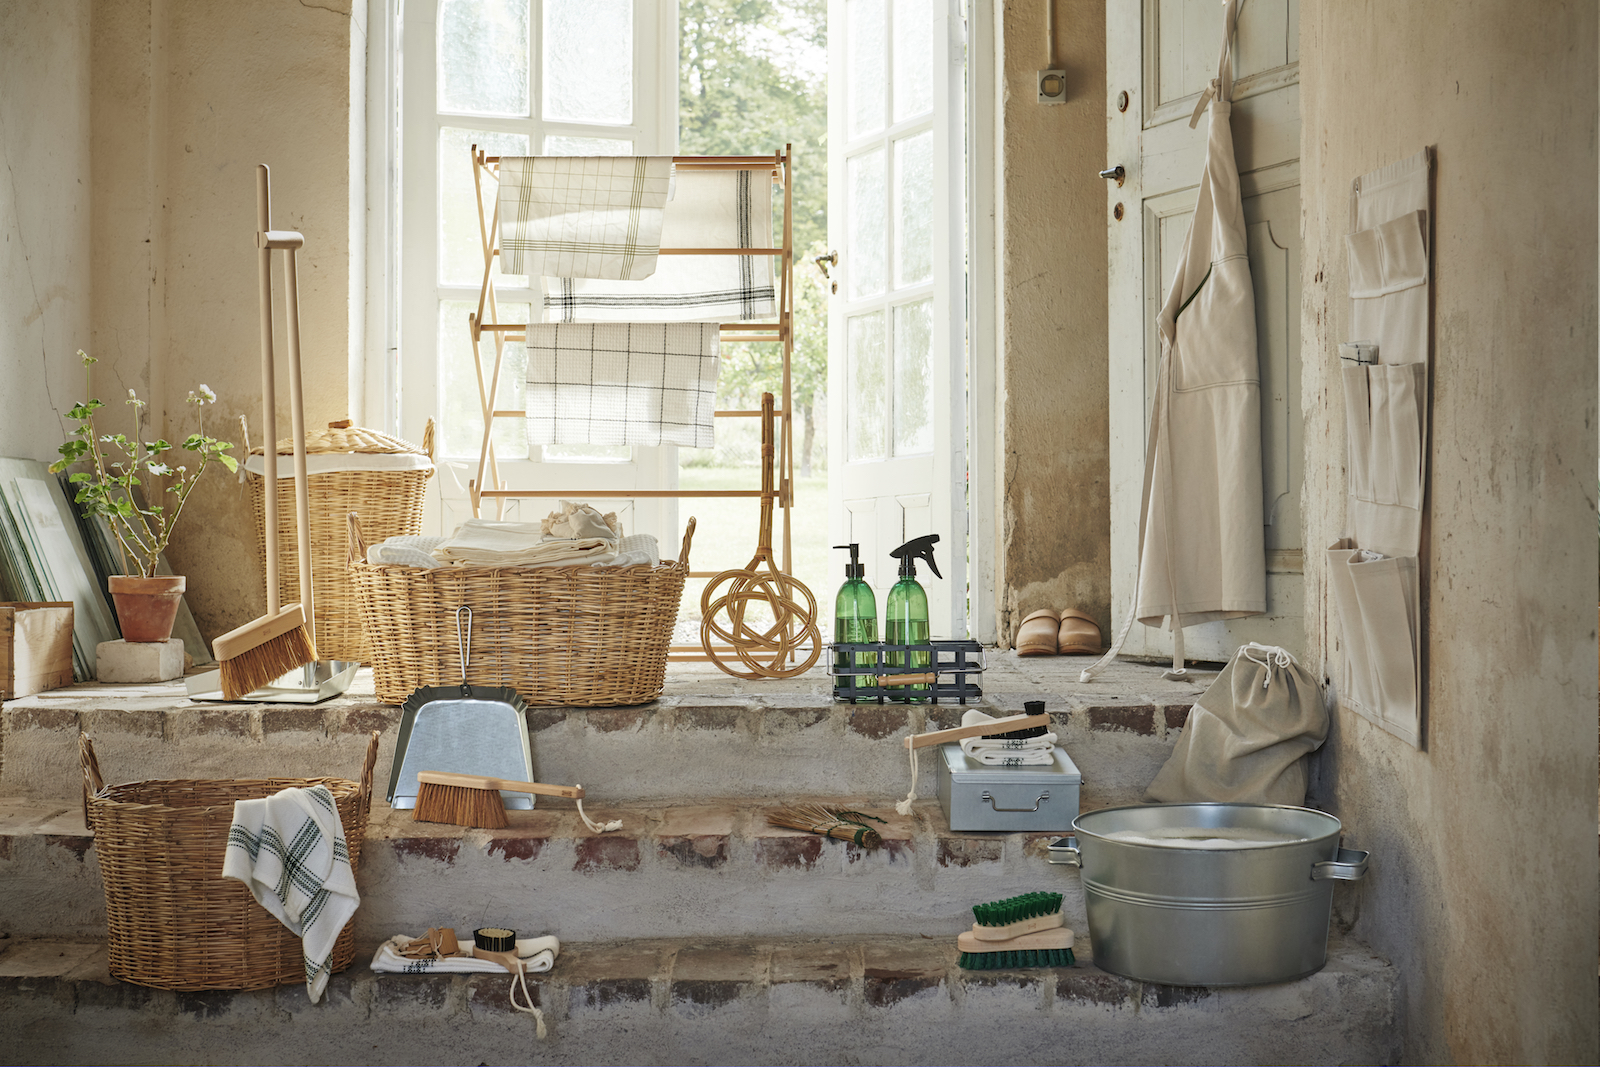 Ikea's upcoming collection wants to help you spring clean in style